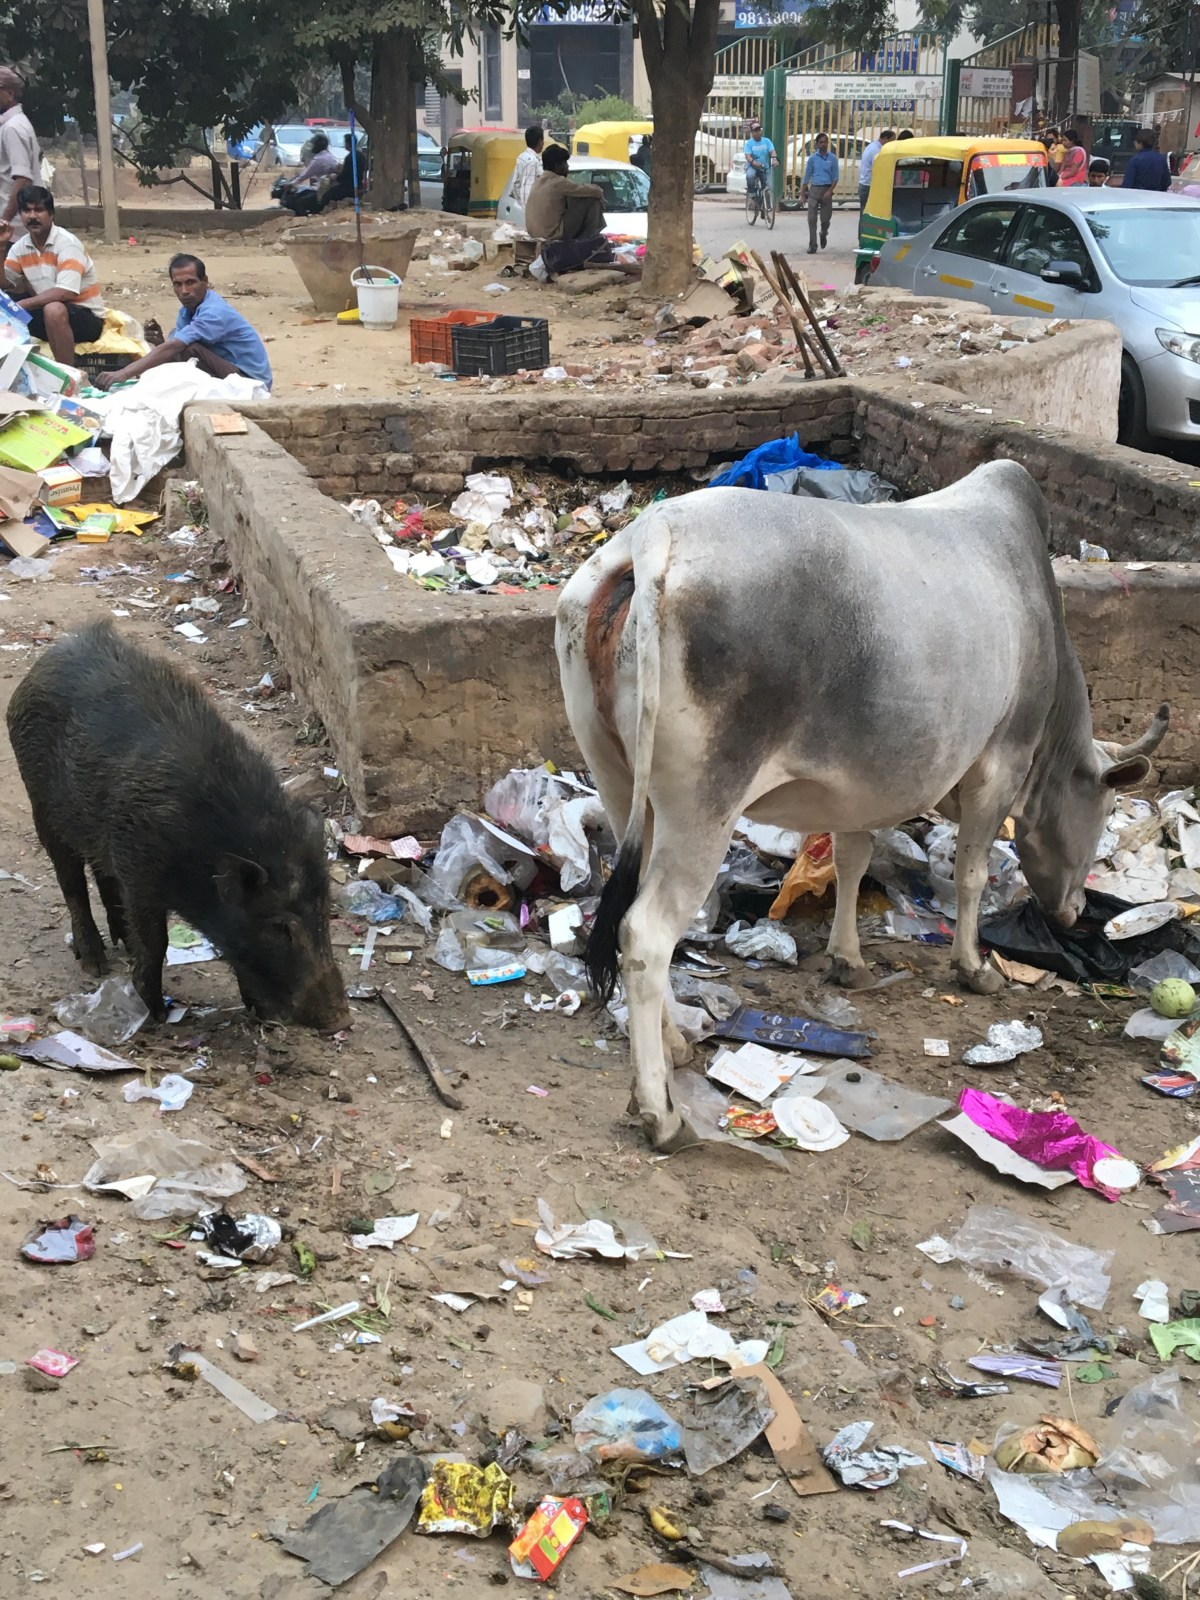 Wild cow and a pig eating the garbage